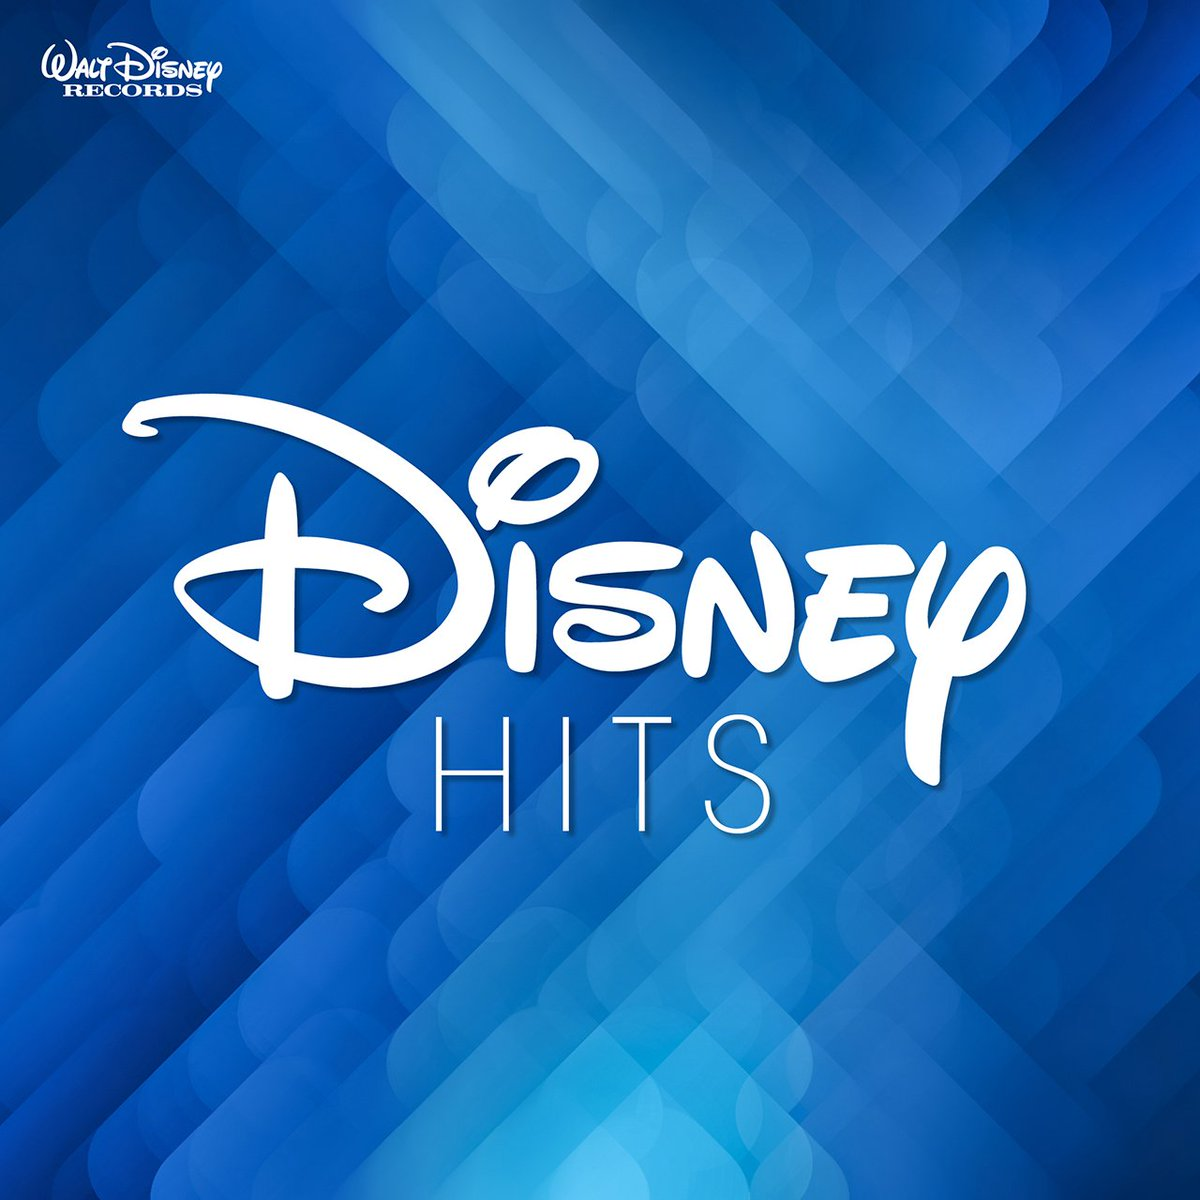 Disney Music On Twitter This Playlist Is A Mighty One So Playlisters Beware Listen To Our Disney Hits Spotify Playlist Here Https T Co Gof9lptldx Https T Co Nlfa4nkfef